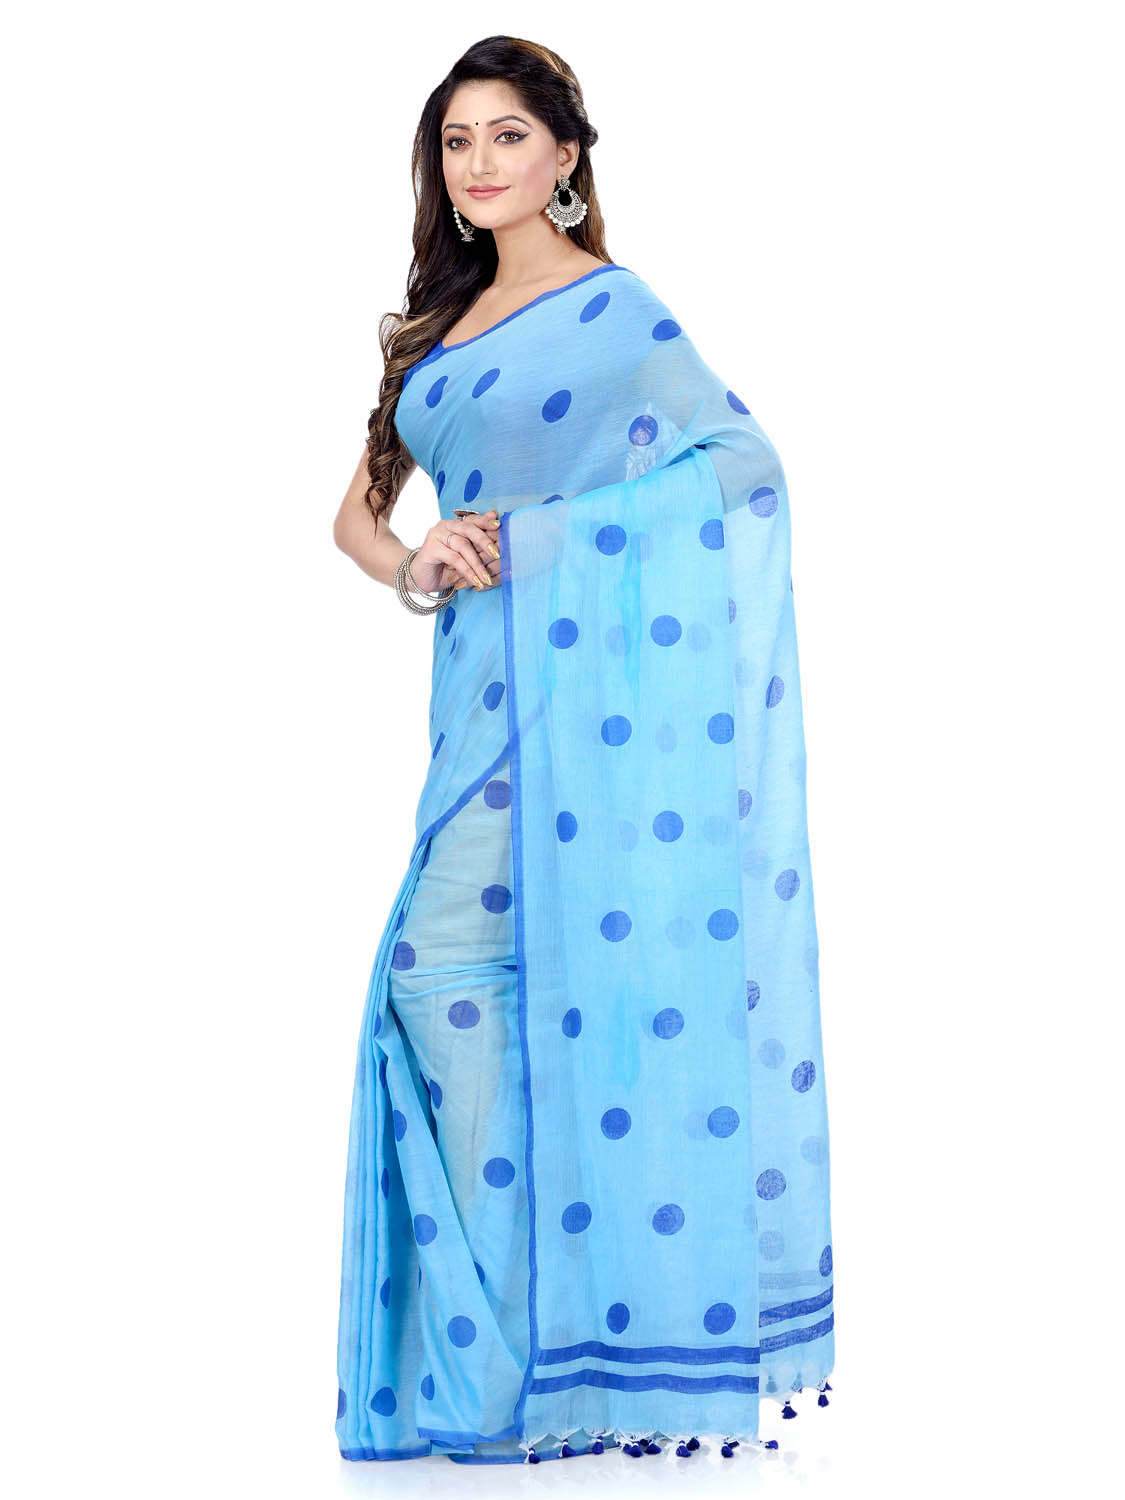 Women`s Traditional Hand Woven Malmal Bengal Handloom Pure Cotton Saree Without Blouse Piece (Sky Blue Deep Blue)